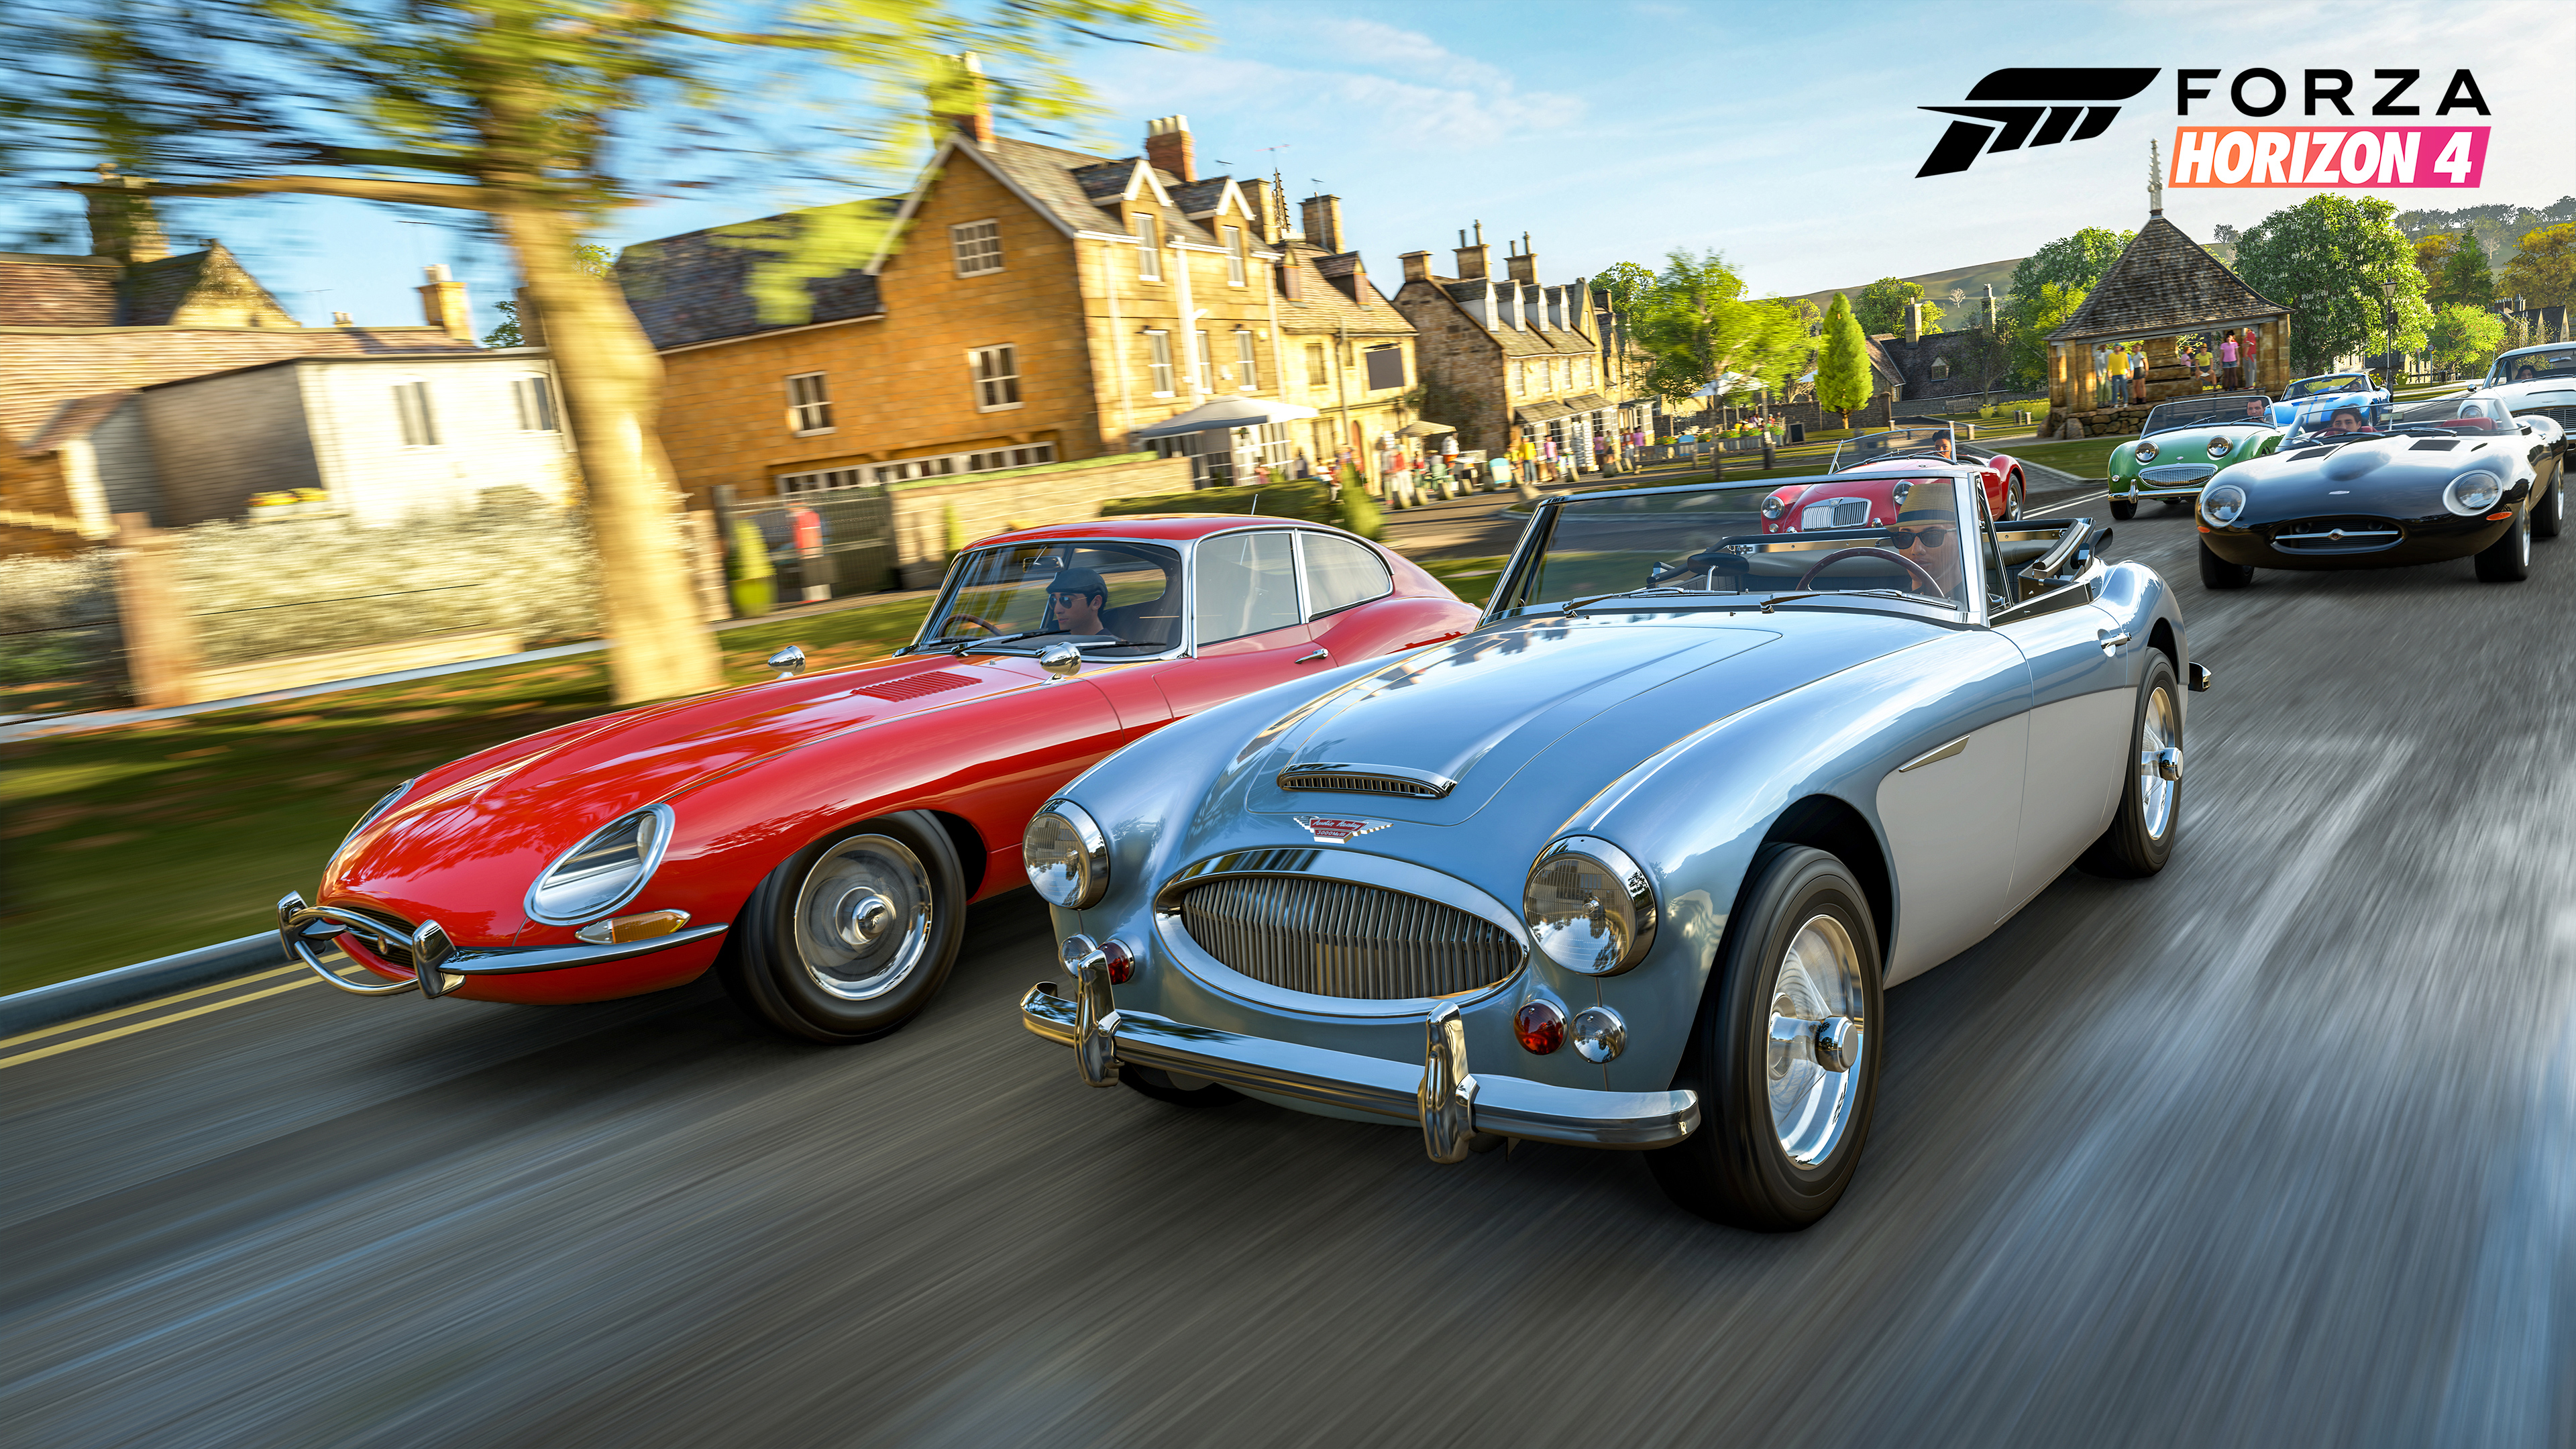 Forza Horizon 4's Britain setting wasn't the developer's